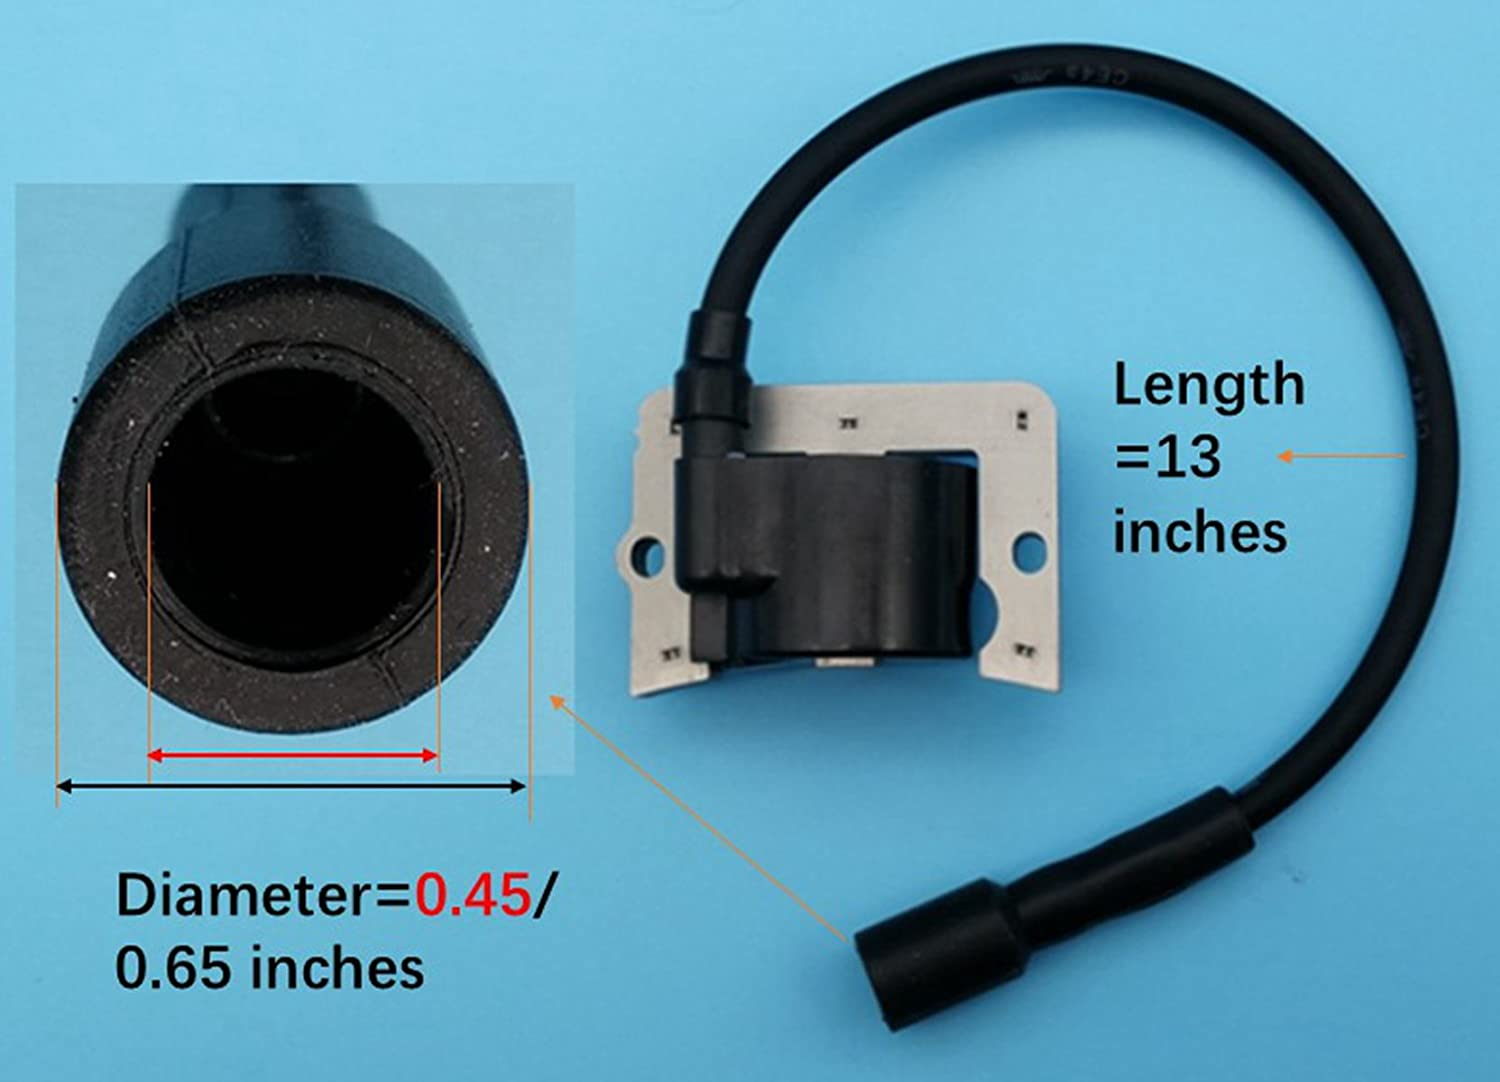 Tuzliufi Replace Ignition Coil Kohler CH11 CH12.5 CH13 CH14 CH15 CH410 CH430 CH450 CV11 CV12.5 CV13 CV14 CV15 CV430 CV460 CV461 CV490 CV491 CV492 CV493 12-584-02 12-584-05 12-584-05-S New Z251